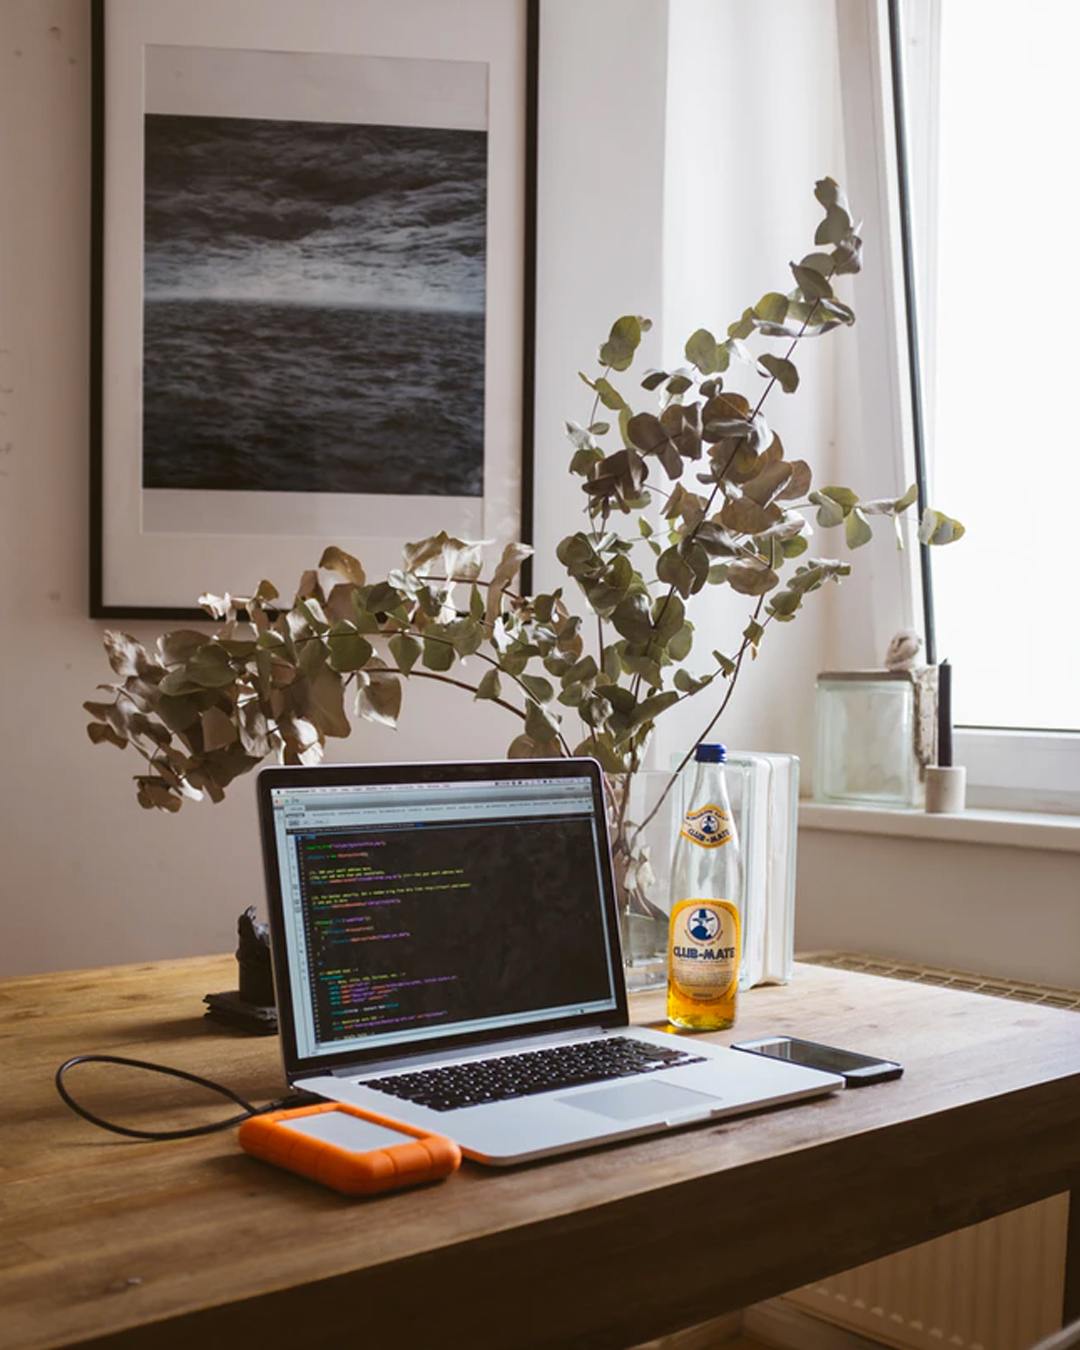 home office set up with apple laptop, desk plant and wall art of the ocean